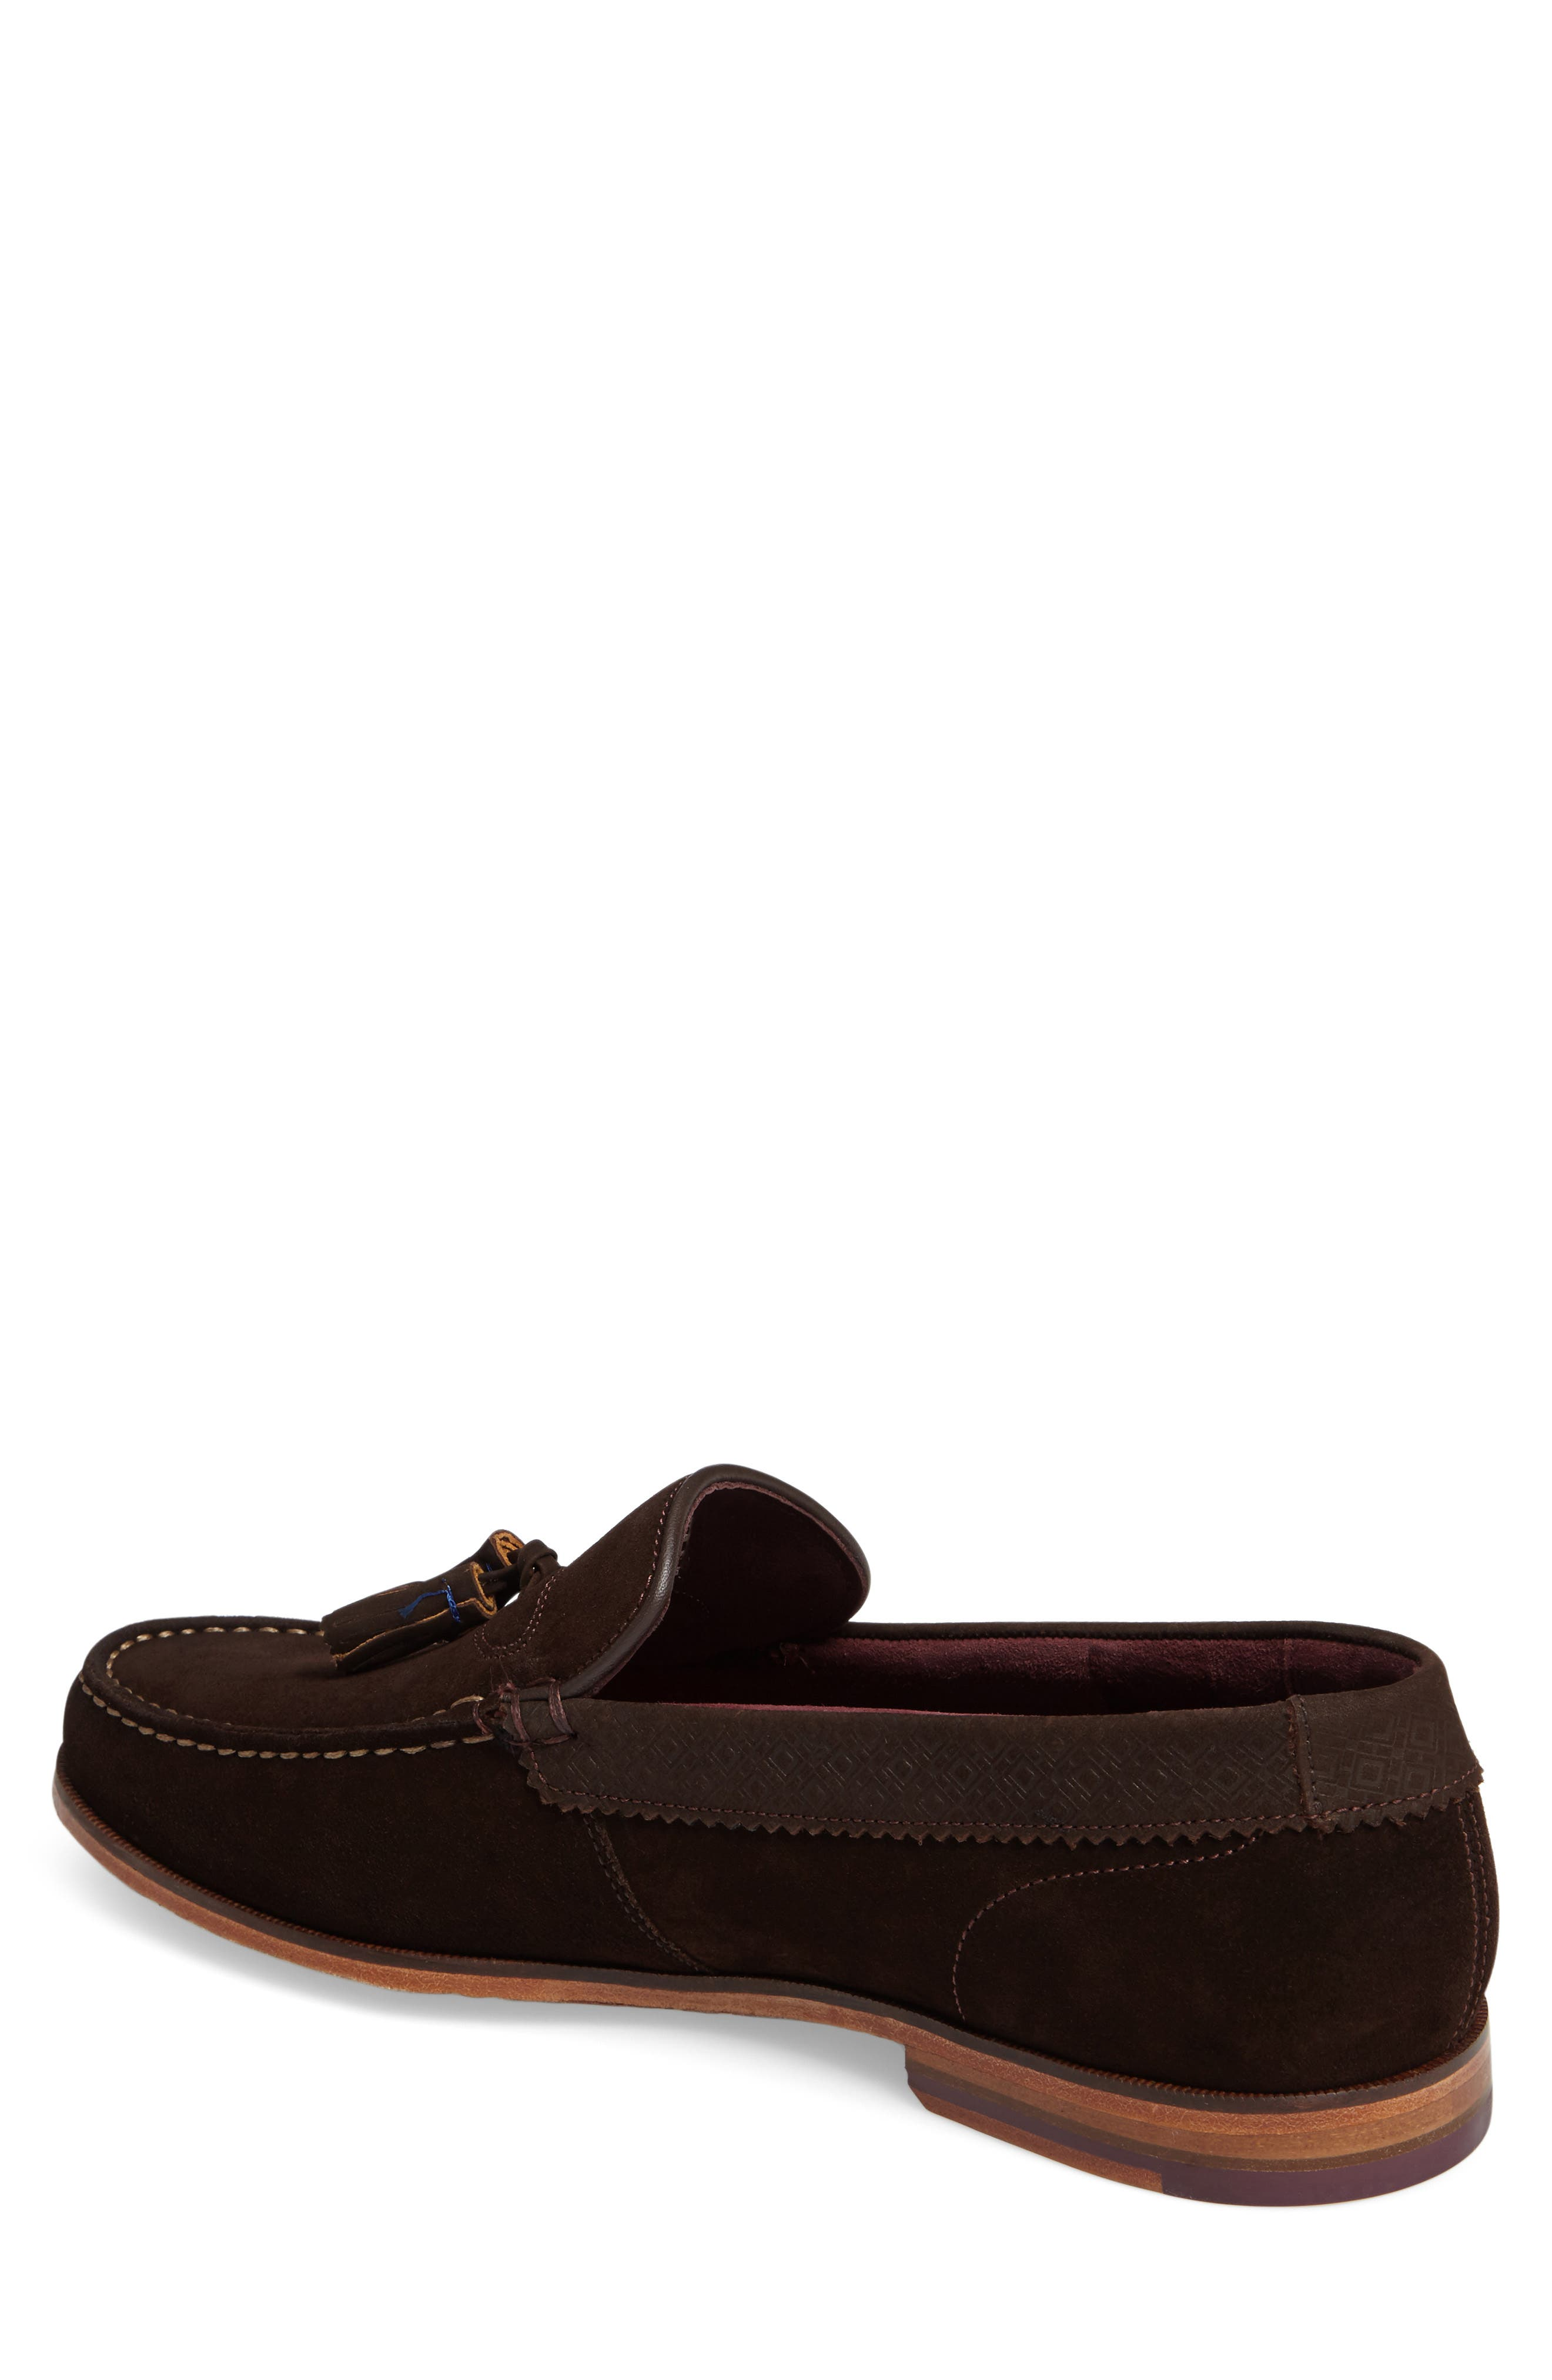 Dougge Tassel Loafer,                             Alternate thumbnail 9, color,